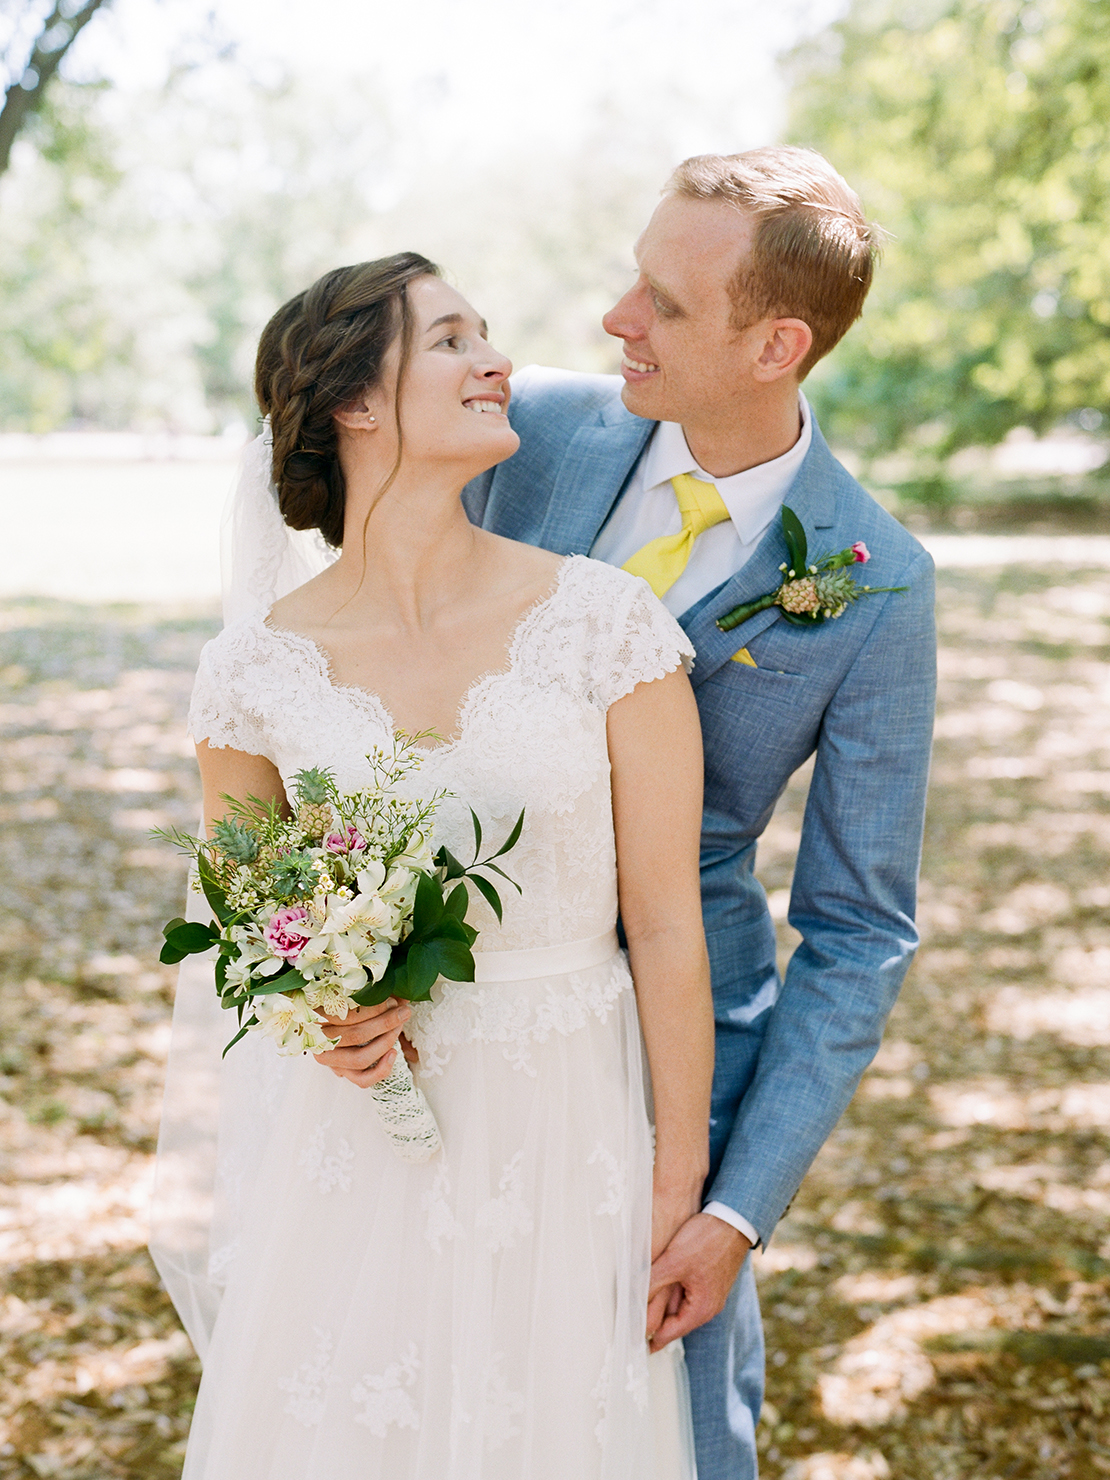 New Orleans Wedding at Audubon Park by Heidi Vail Fine Art Wedding Photographer Based in Orlando Florida